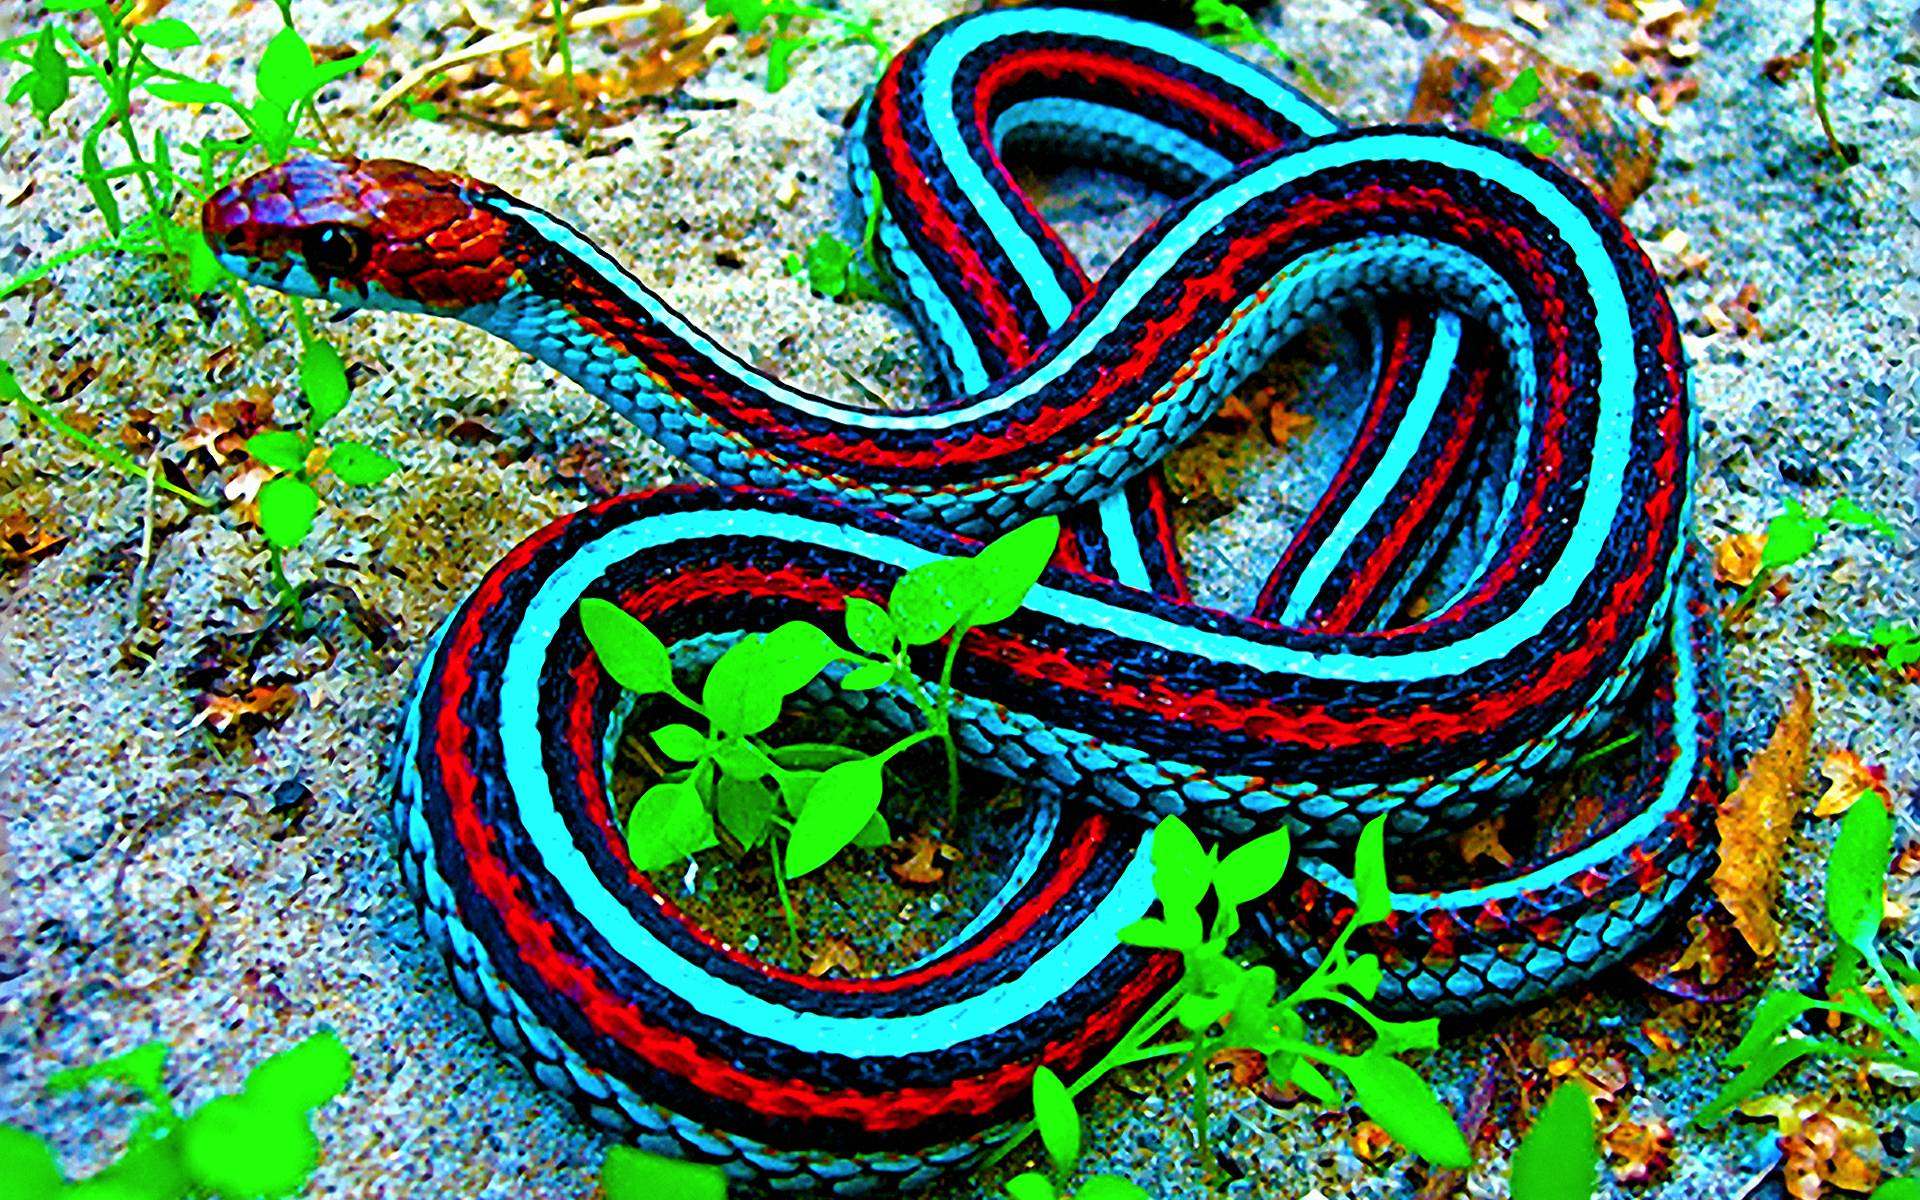 snakes images Snake HD wallpaper and background photos 40437514 1920x1200